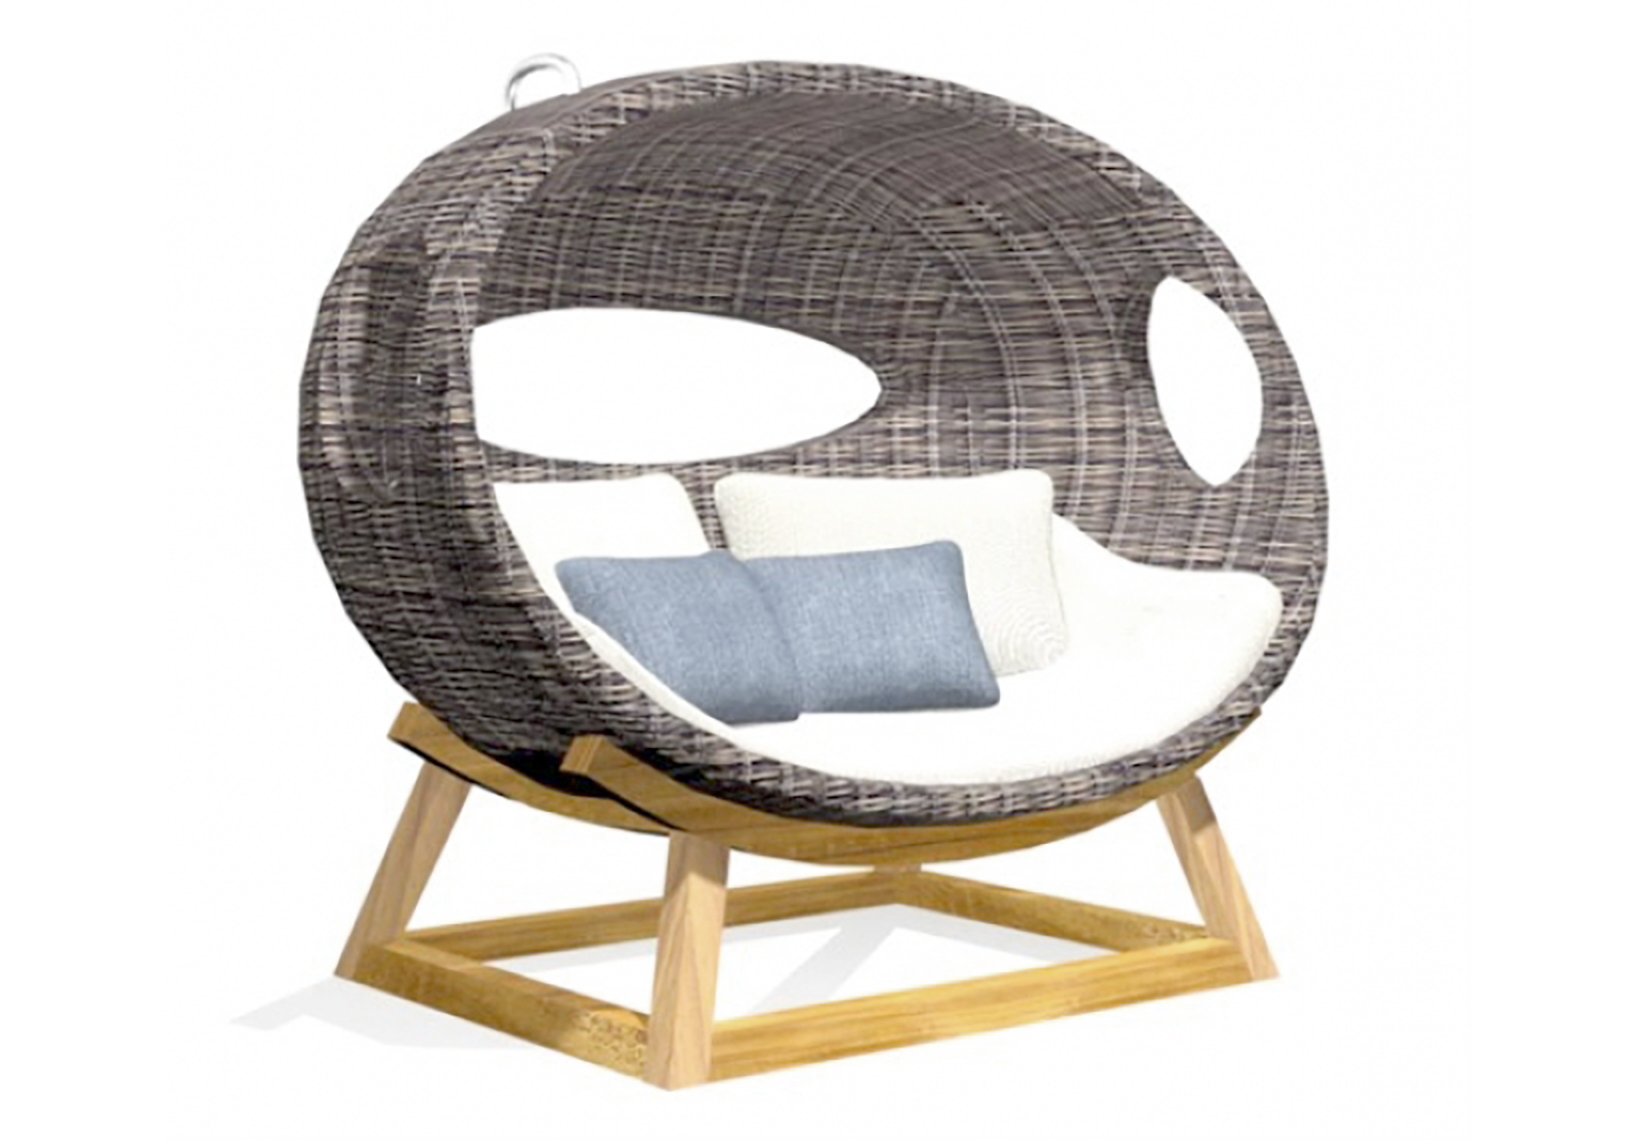 Spavision | Onda Swing Lounge Chair With Stand